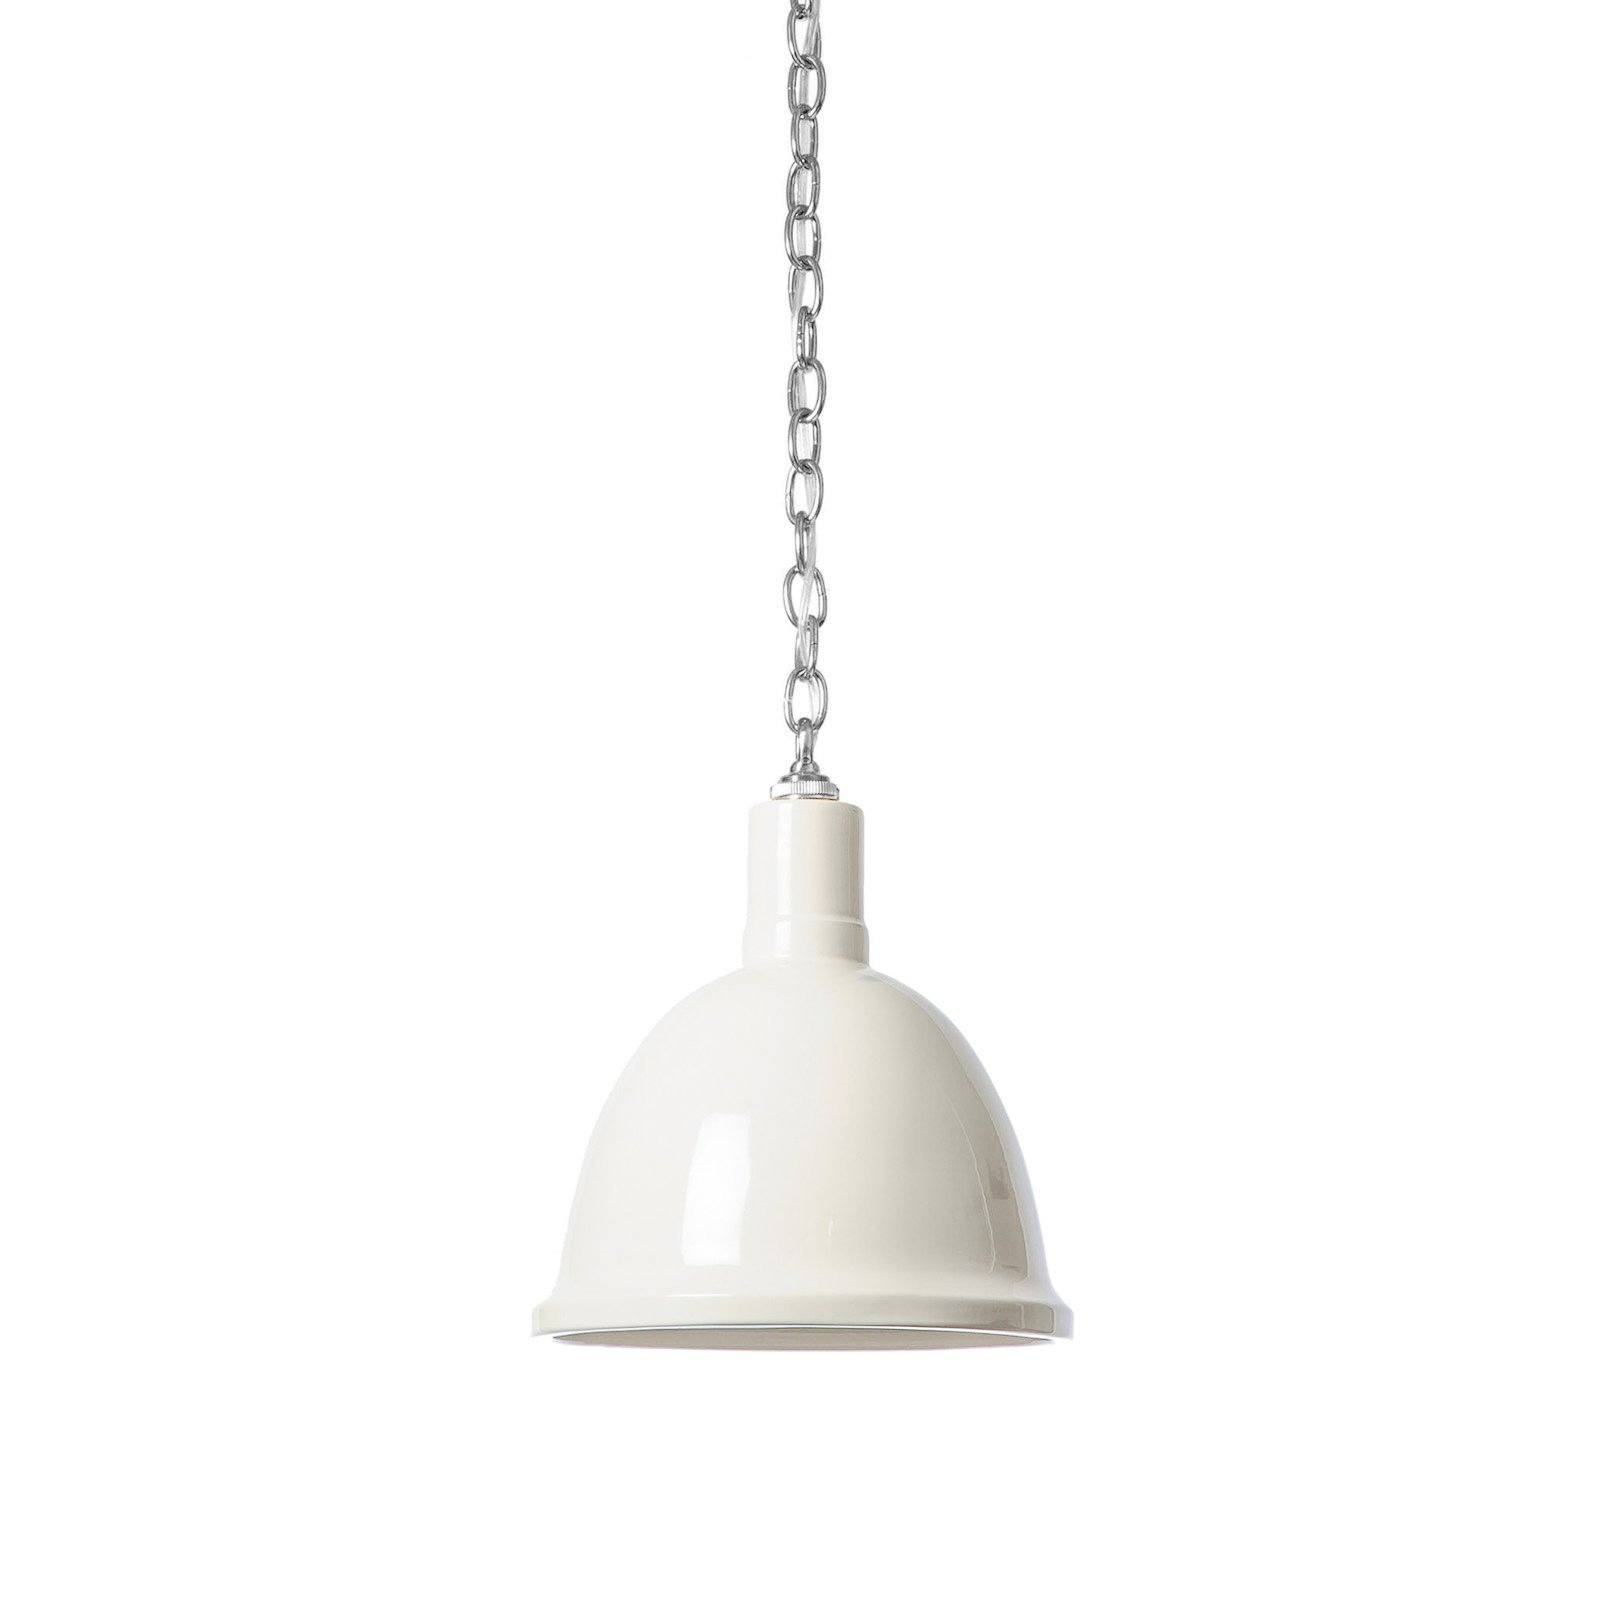 White clay dome pendant lighting pendant white clay dome pendant aloadofball Images